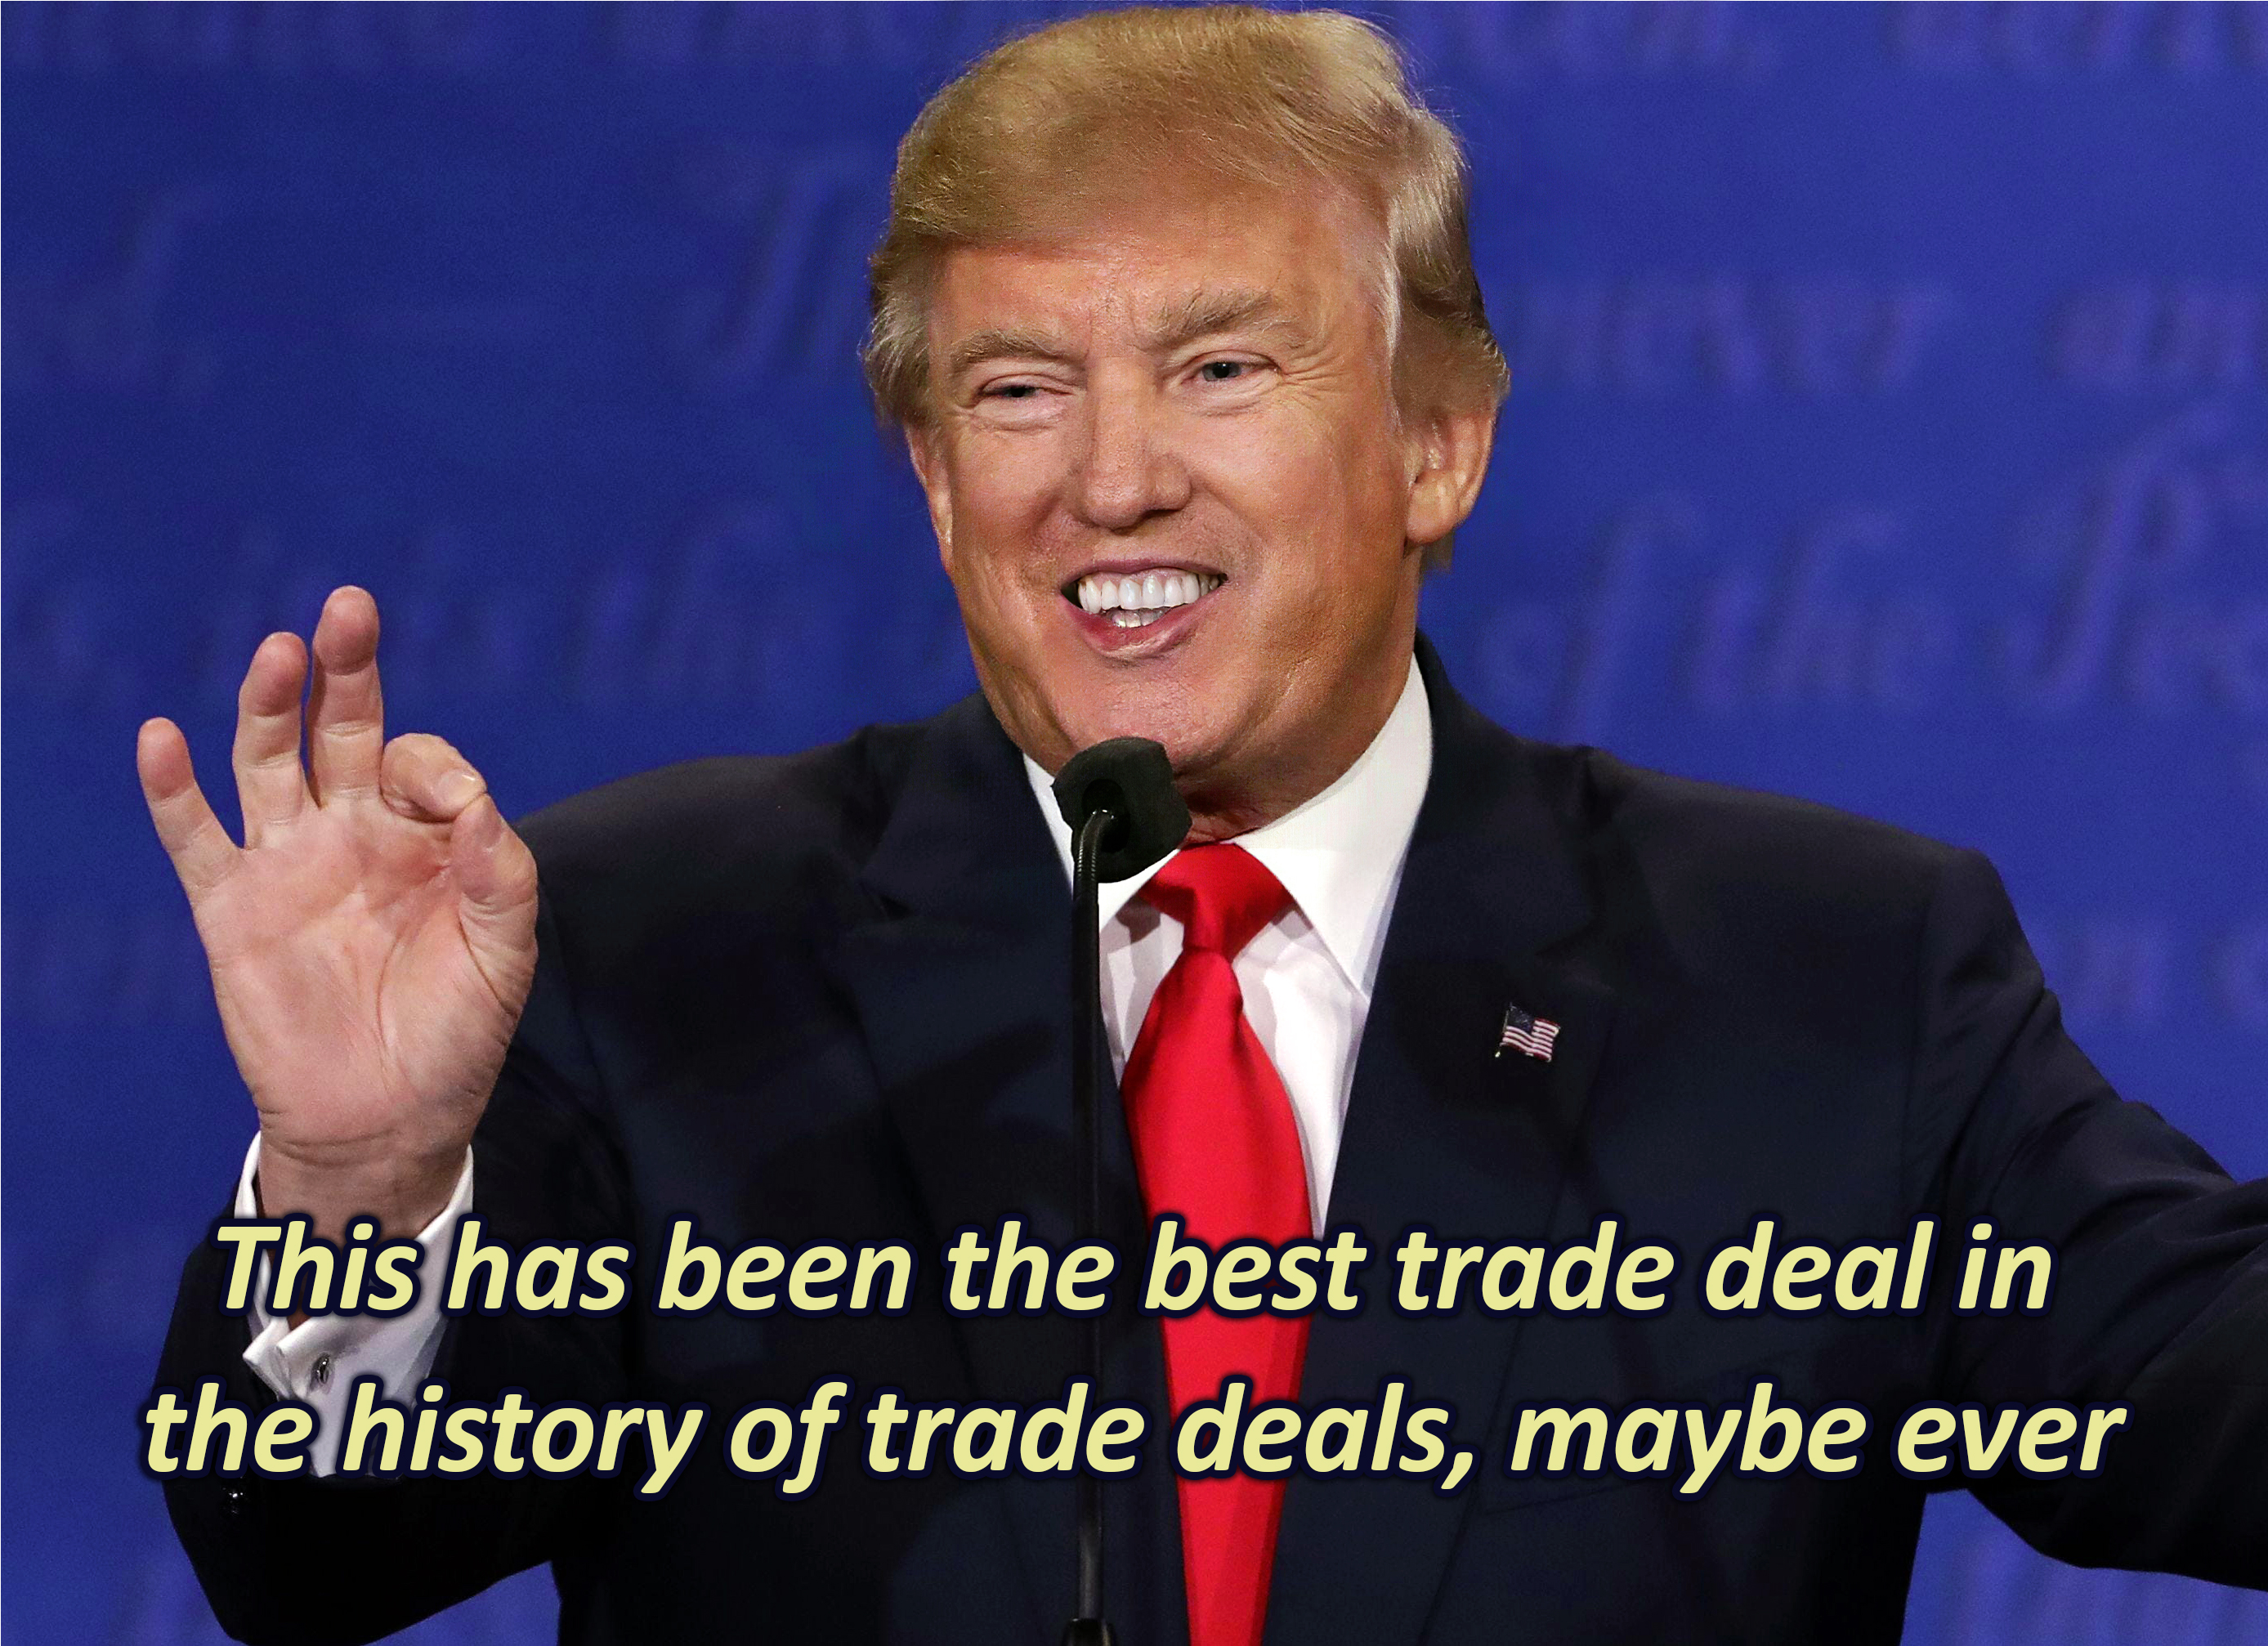 Antimeme Happy Trump The Best Trade Deal The Worst Trade Deal Know Your Meme